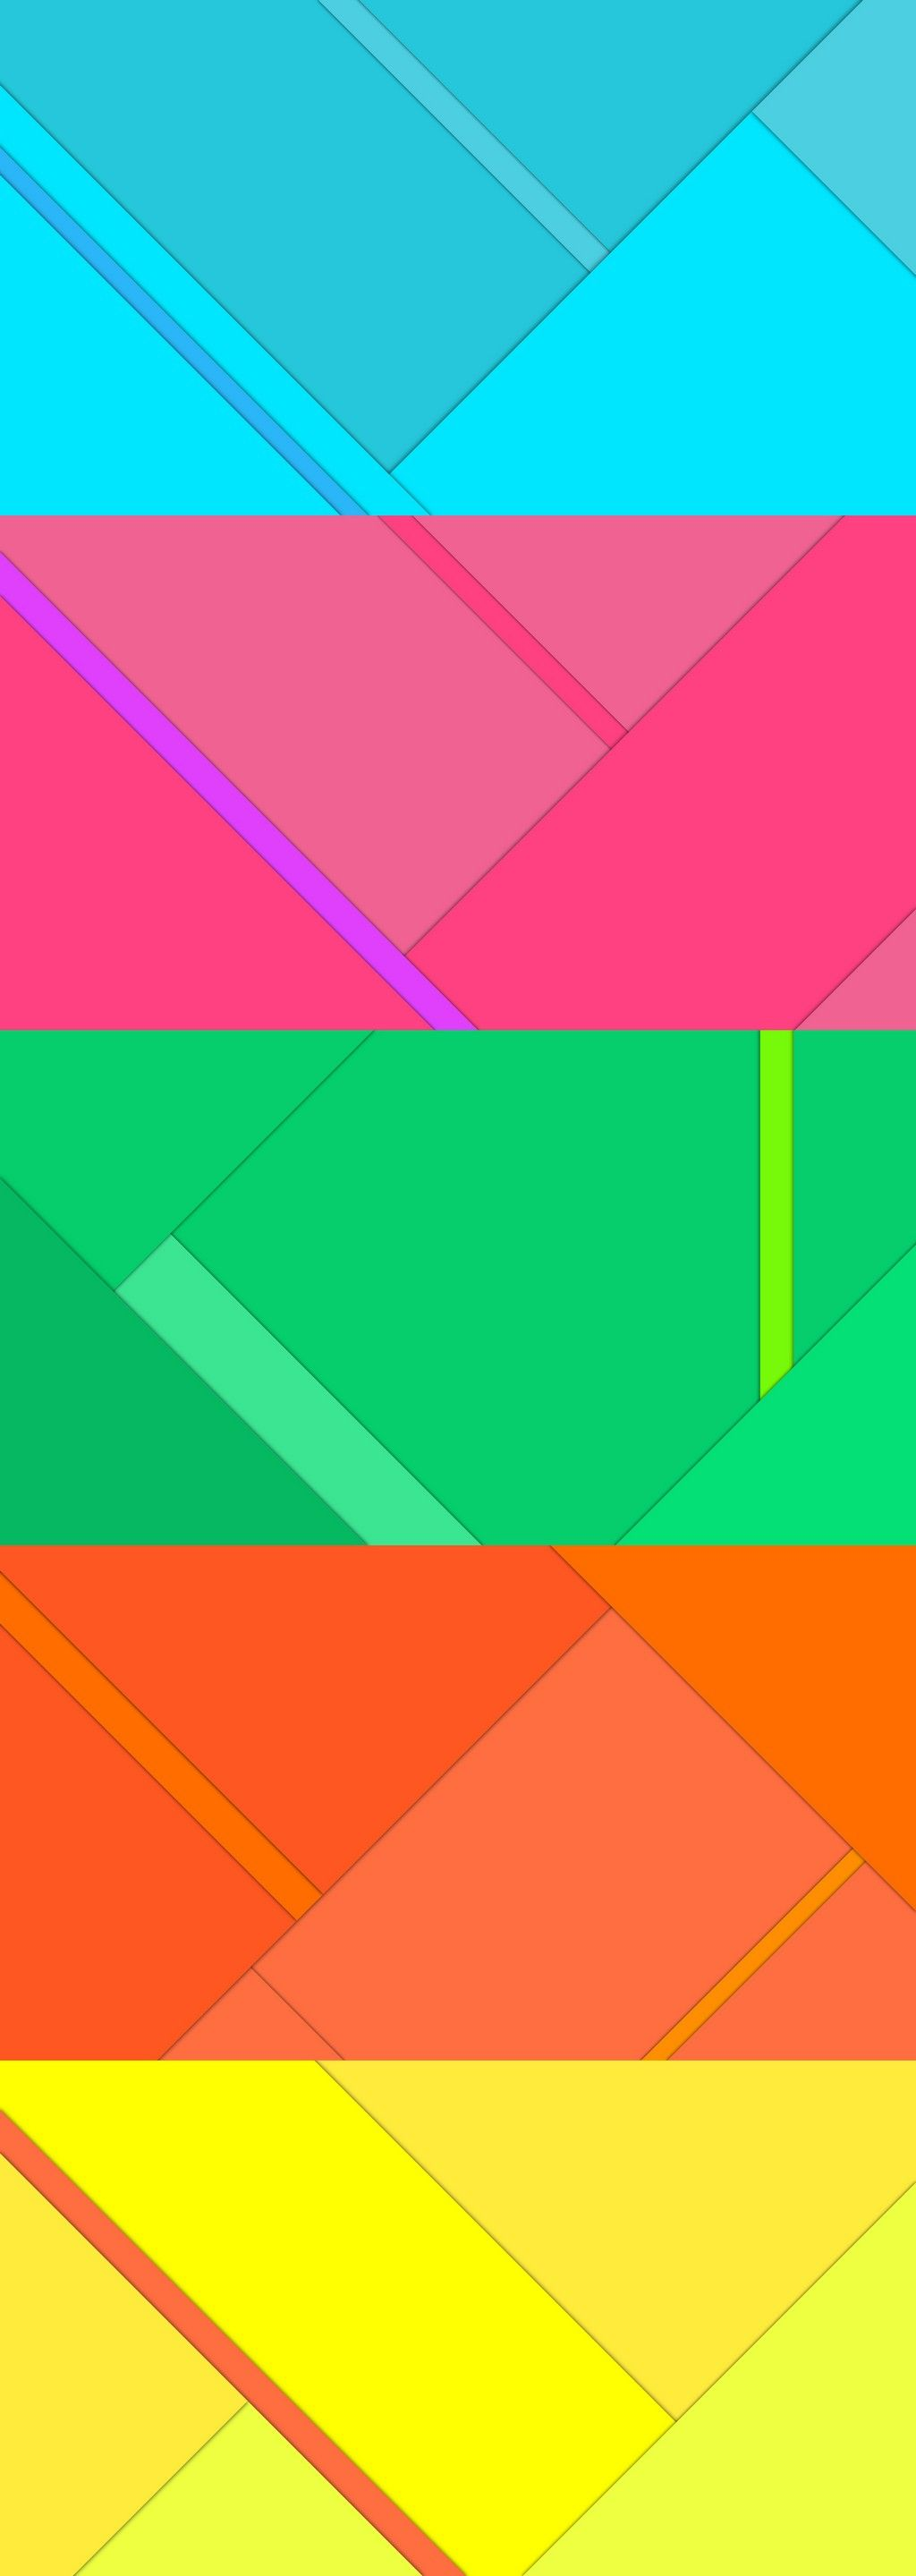 Material Design Backgrounds | Free old links | Material design